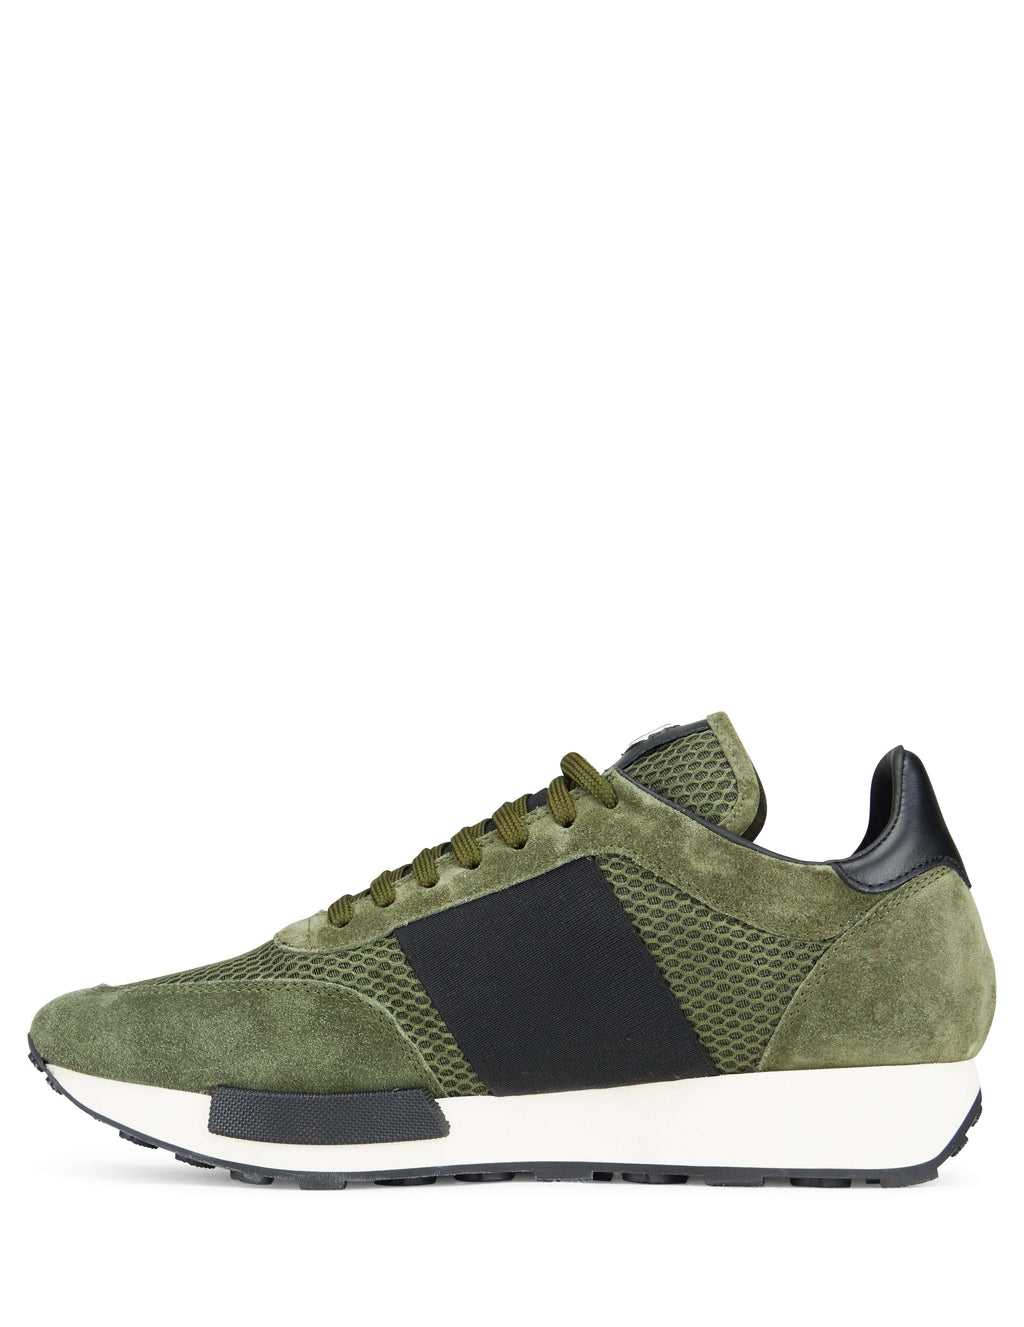 Moncler Men's Giulio Fashion Green Horace Sneakers 101910001A9H833